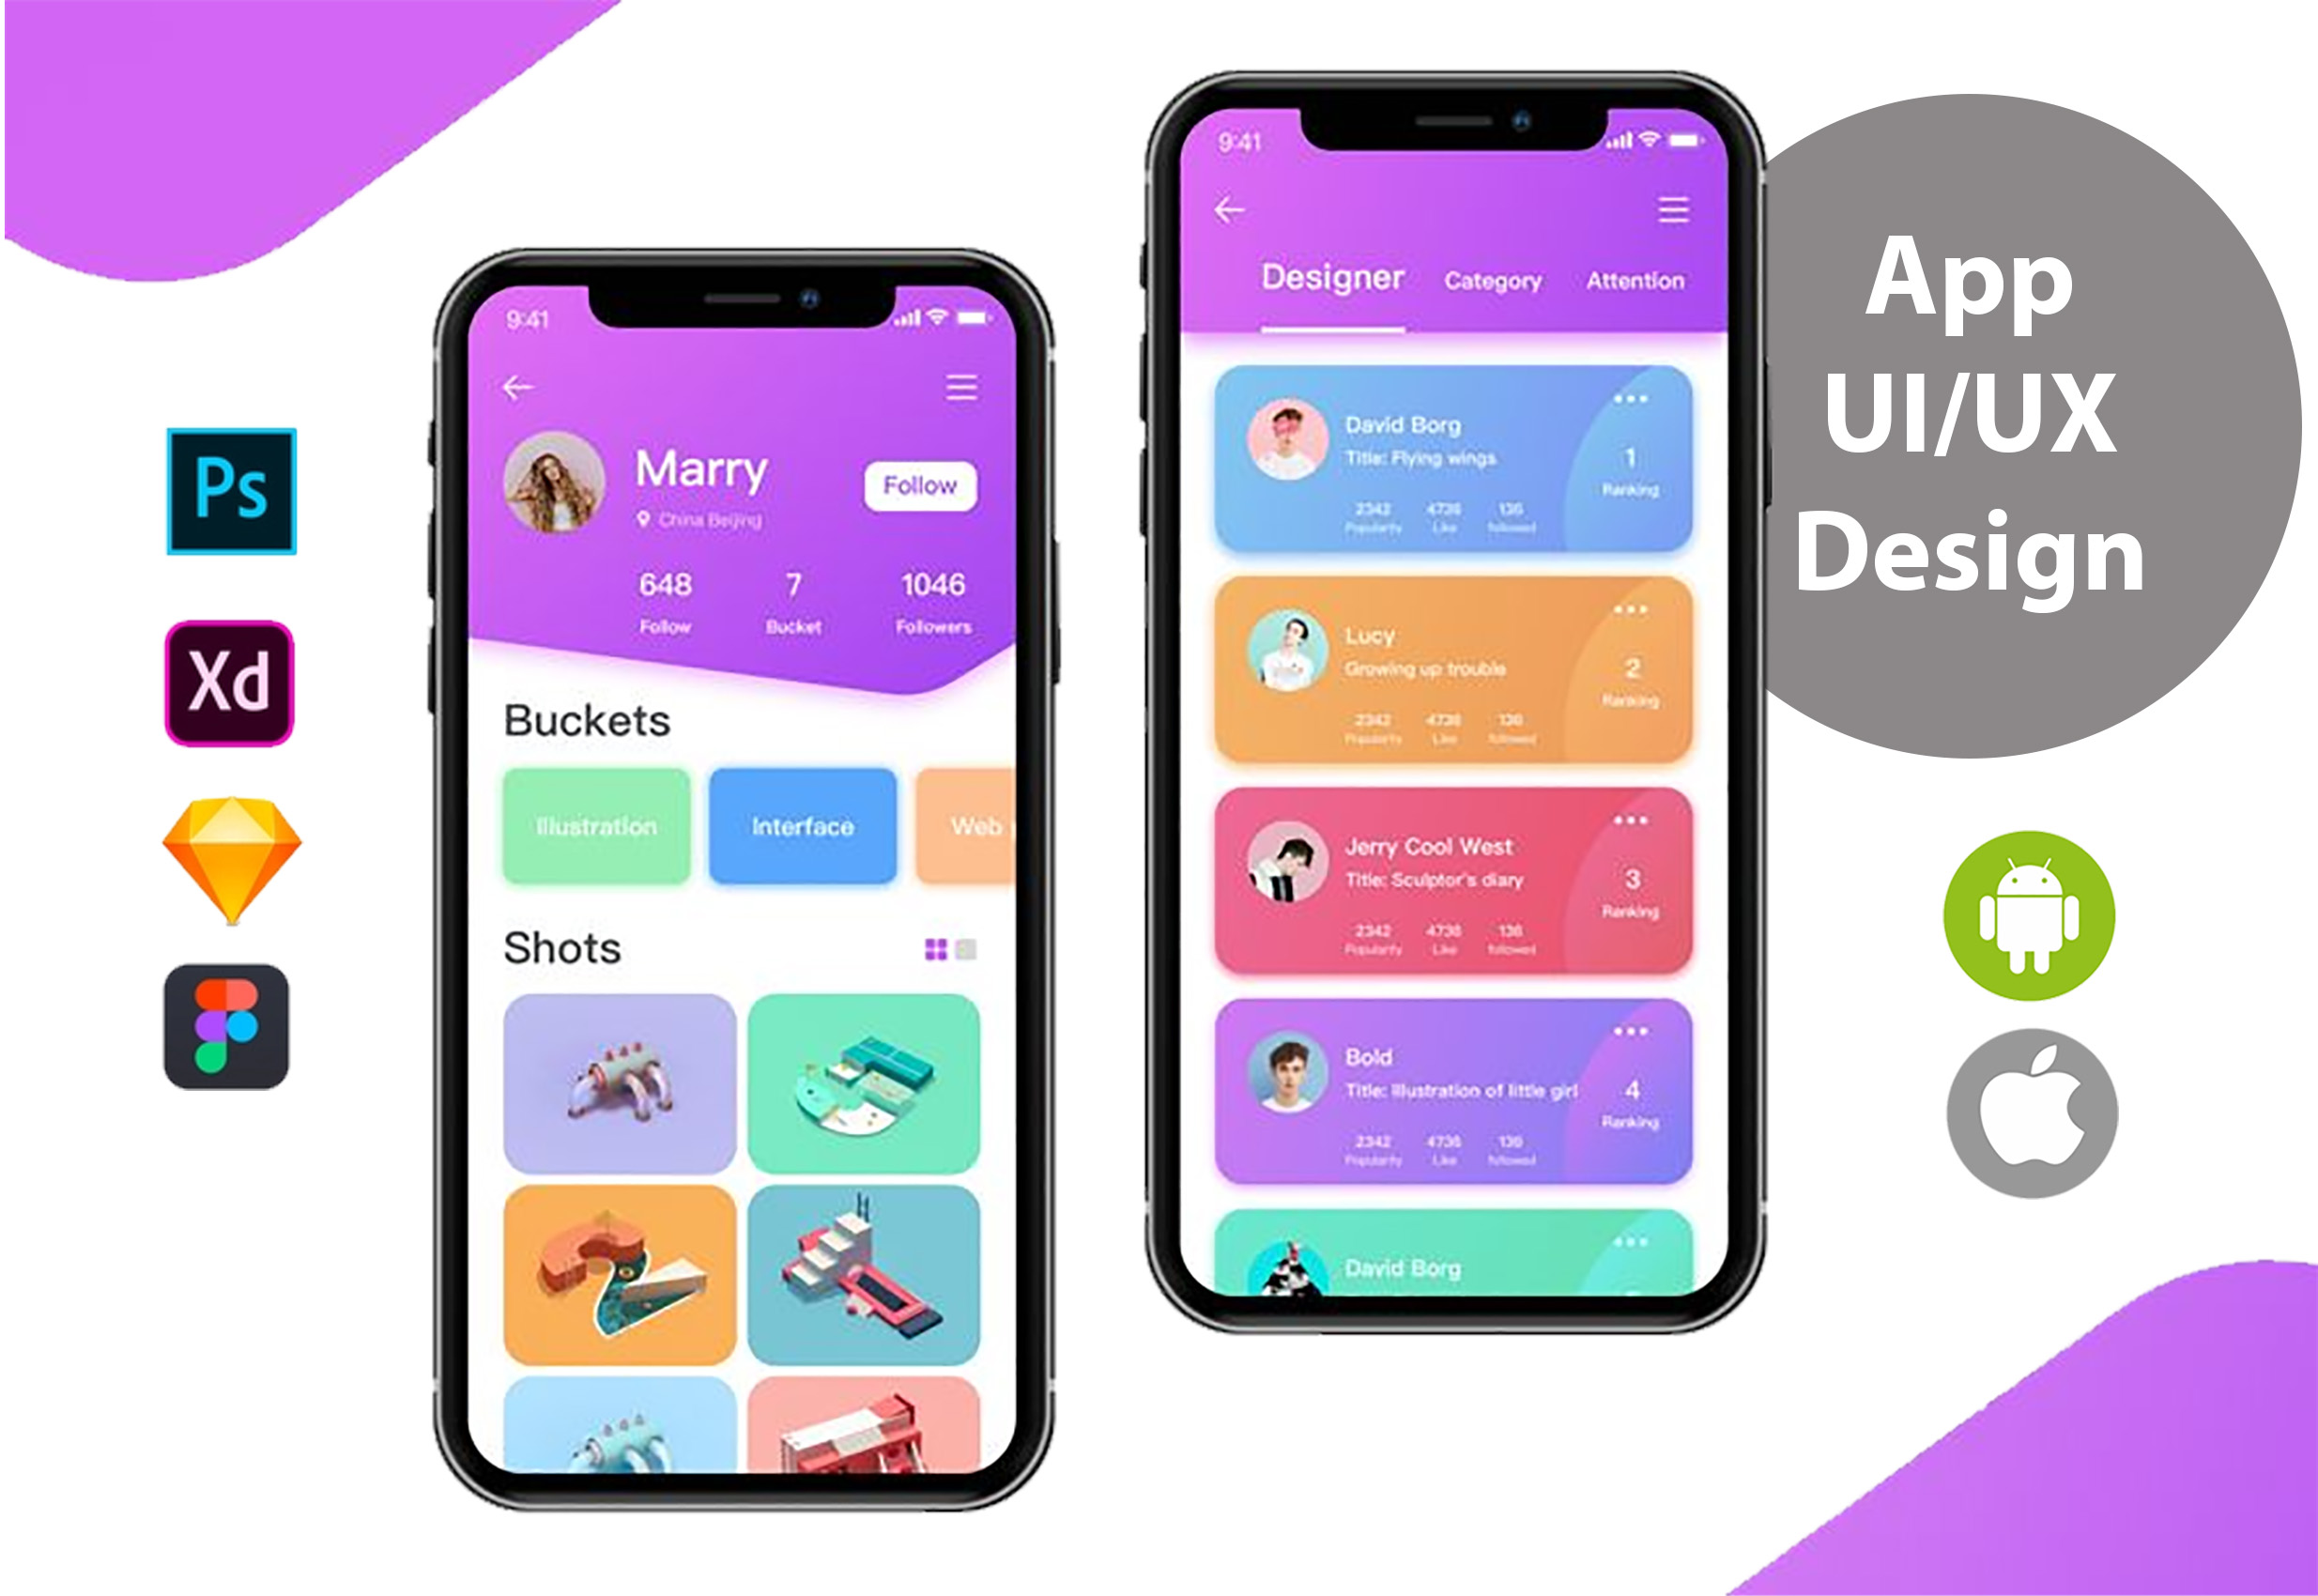 design ui and ux for your mobile app using psd or xd